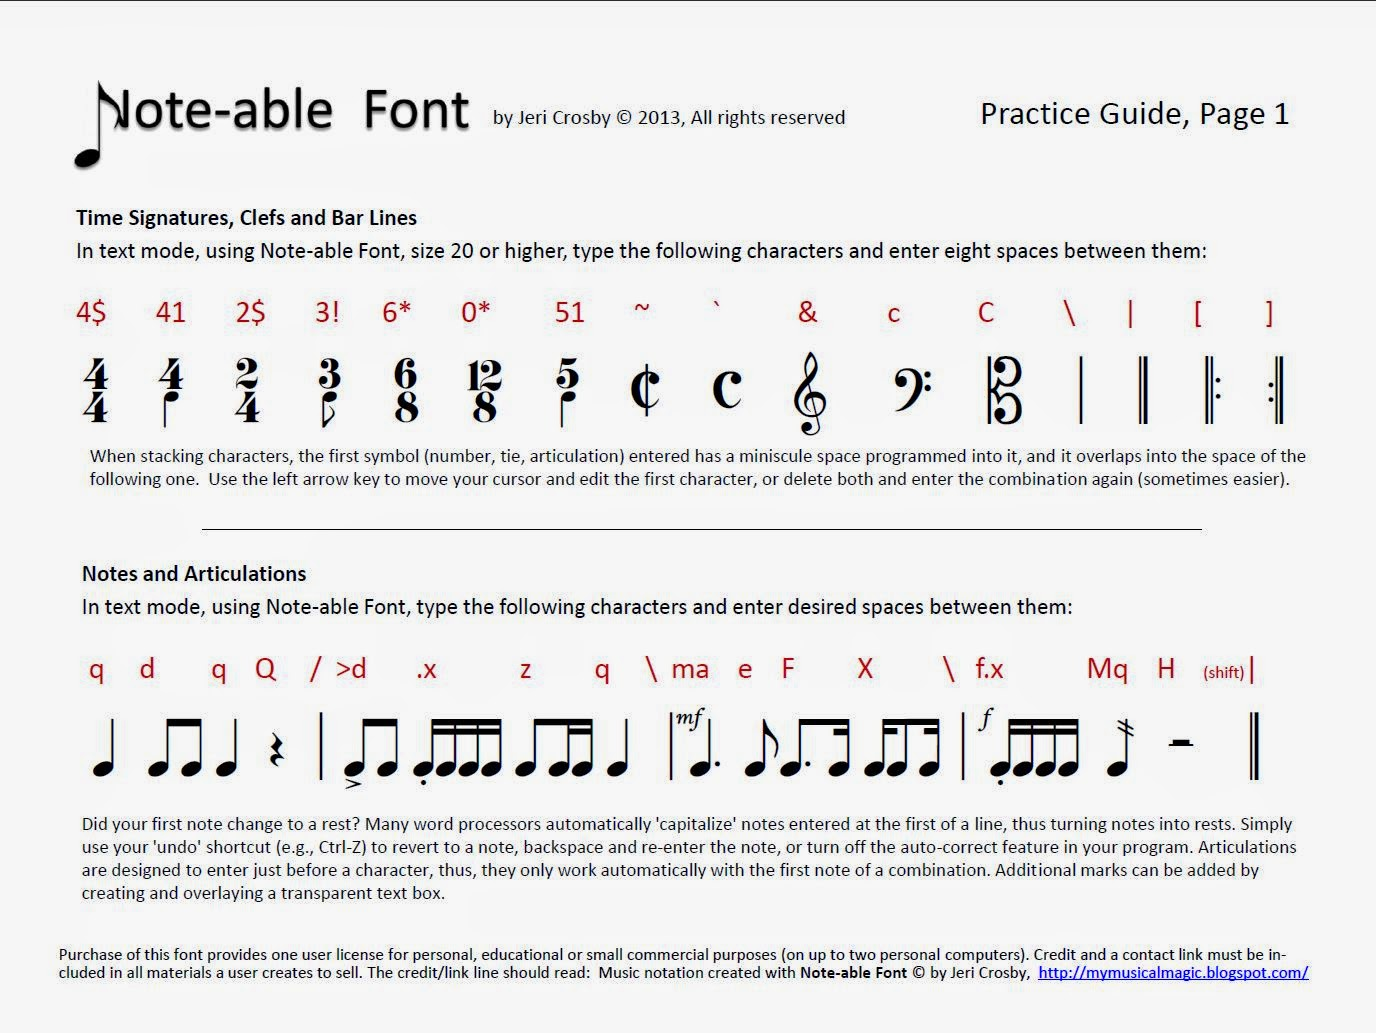 Mymusicalmagic music notation solutions note able font and music at times music clip art is a more effective way to go i created this set to meet this need it also includes a handy users guide and templates biocorpaavc Image collections